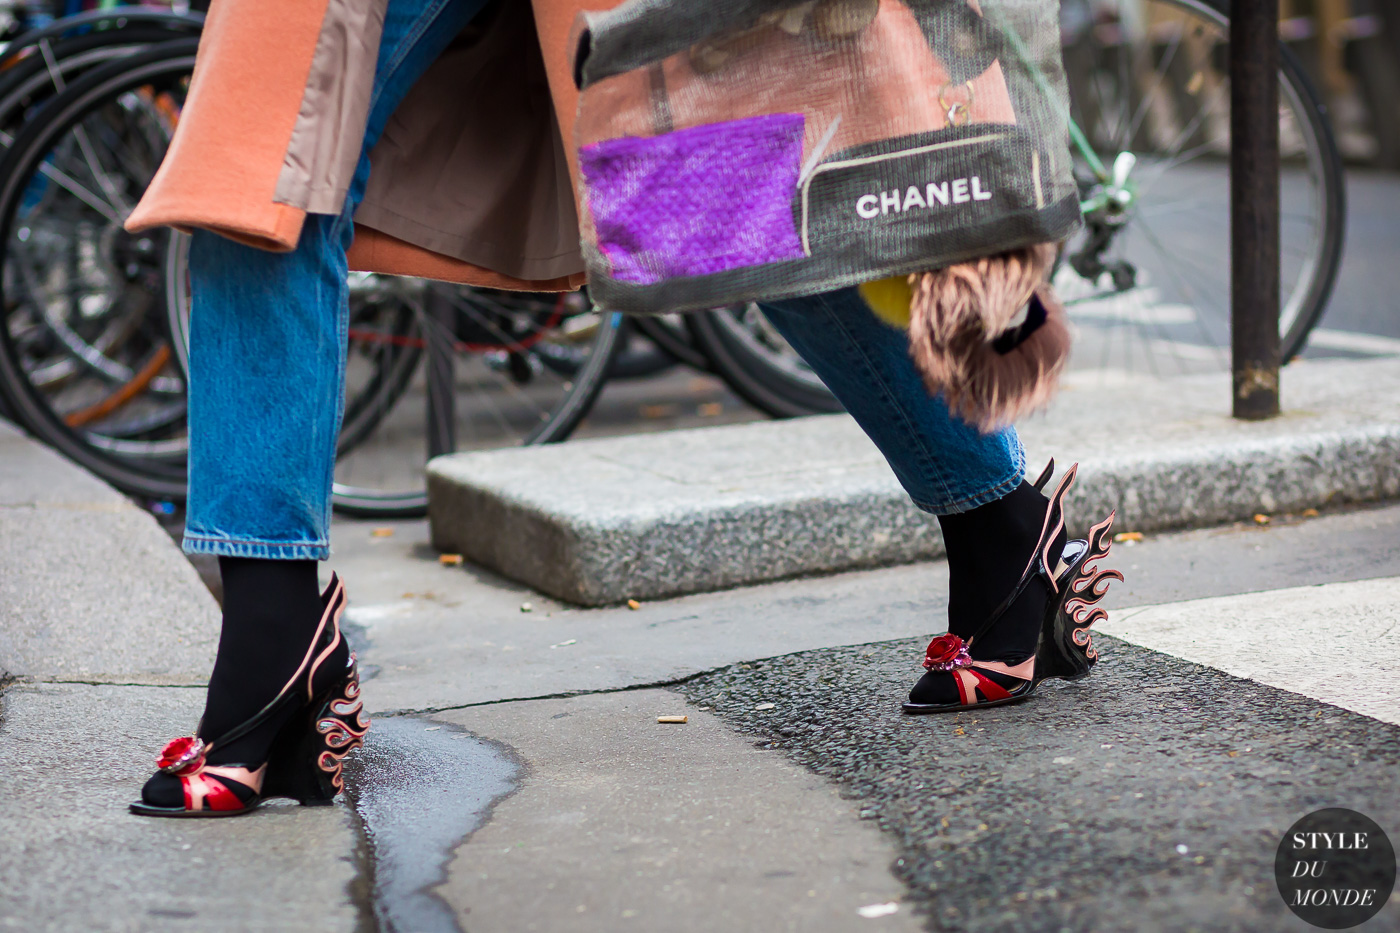 Prada flame shoes Street Style Street Fashion Streetsnaps by STYLEDUMONDE Street Style Fashion Photography